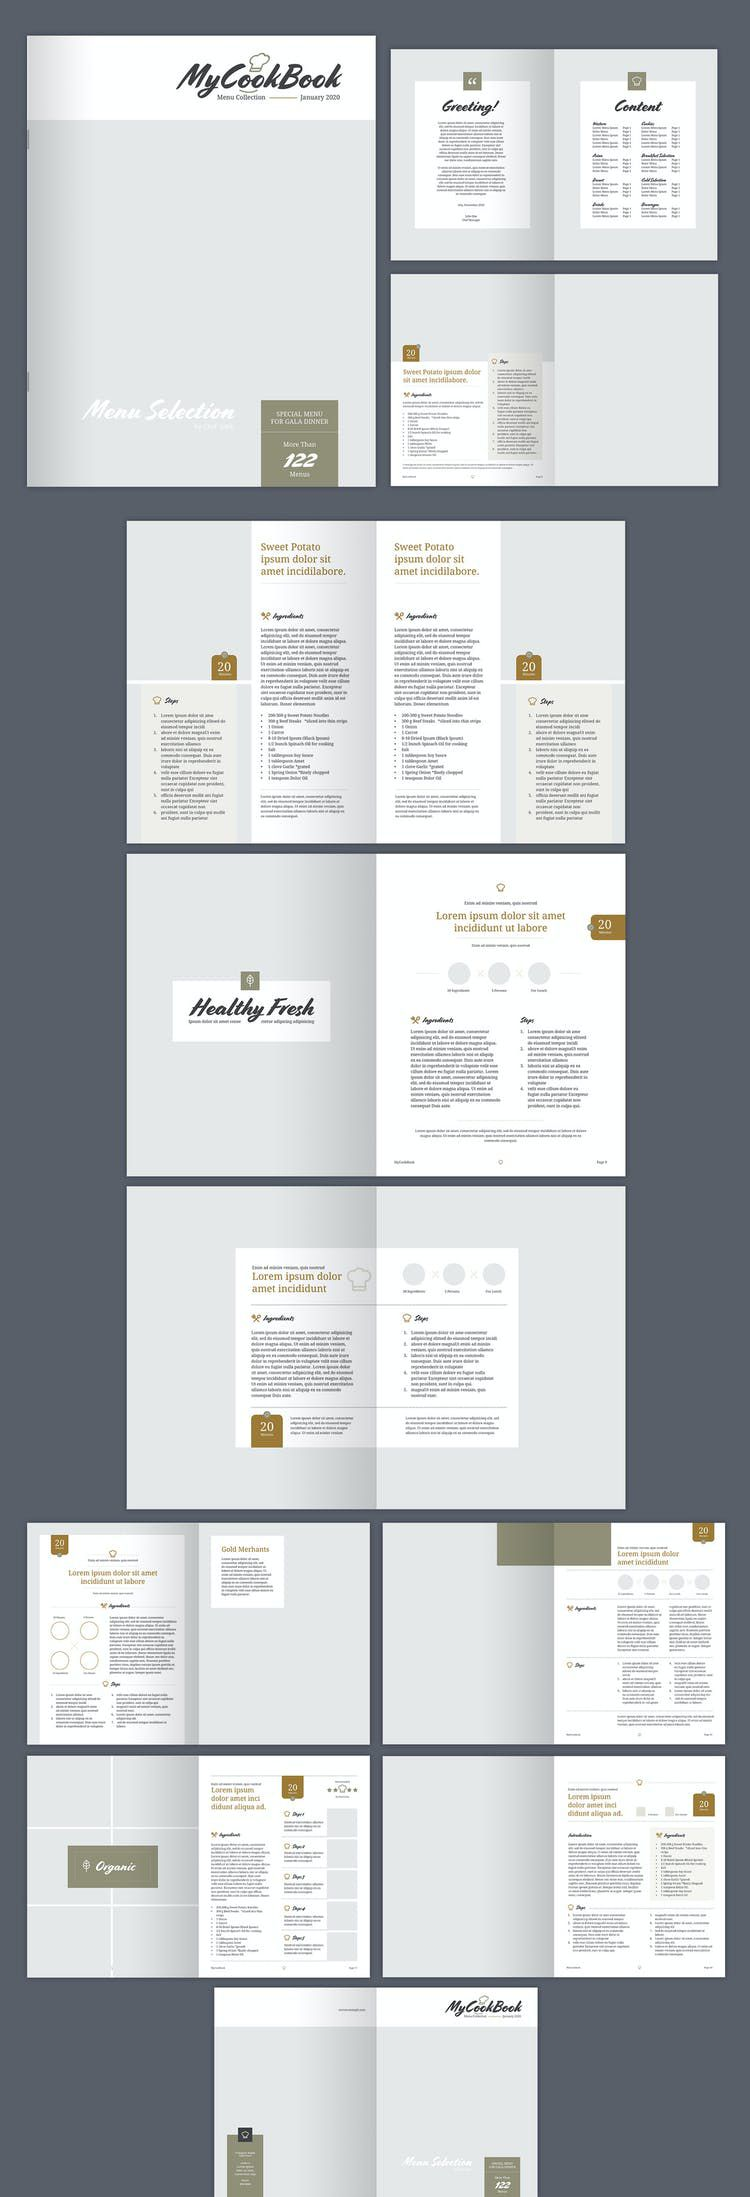 005 Amazing Free Photo Book Template High Resolution  TemplatesFull